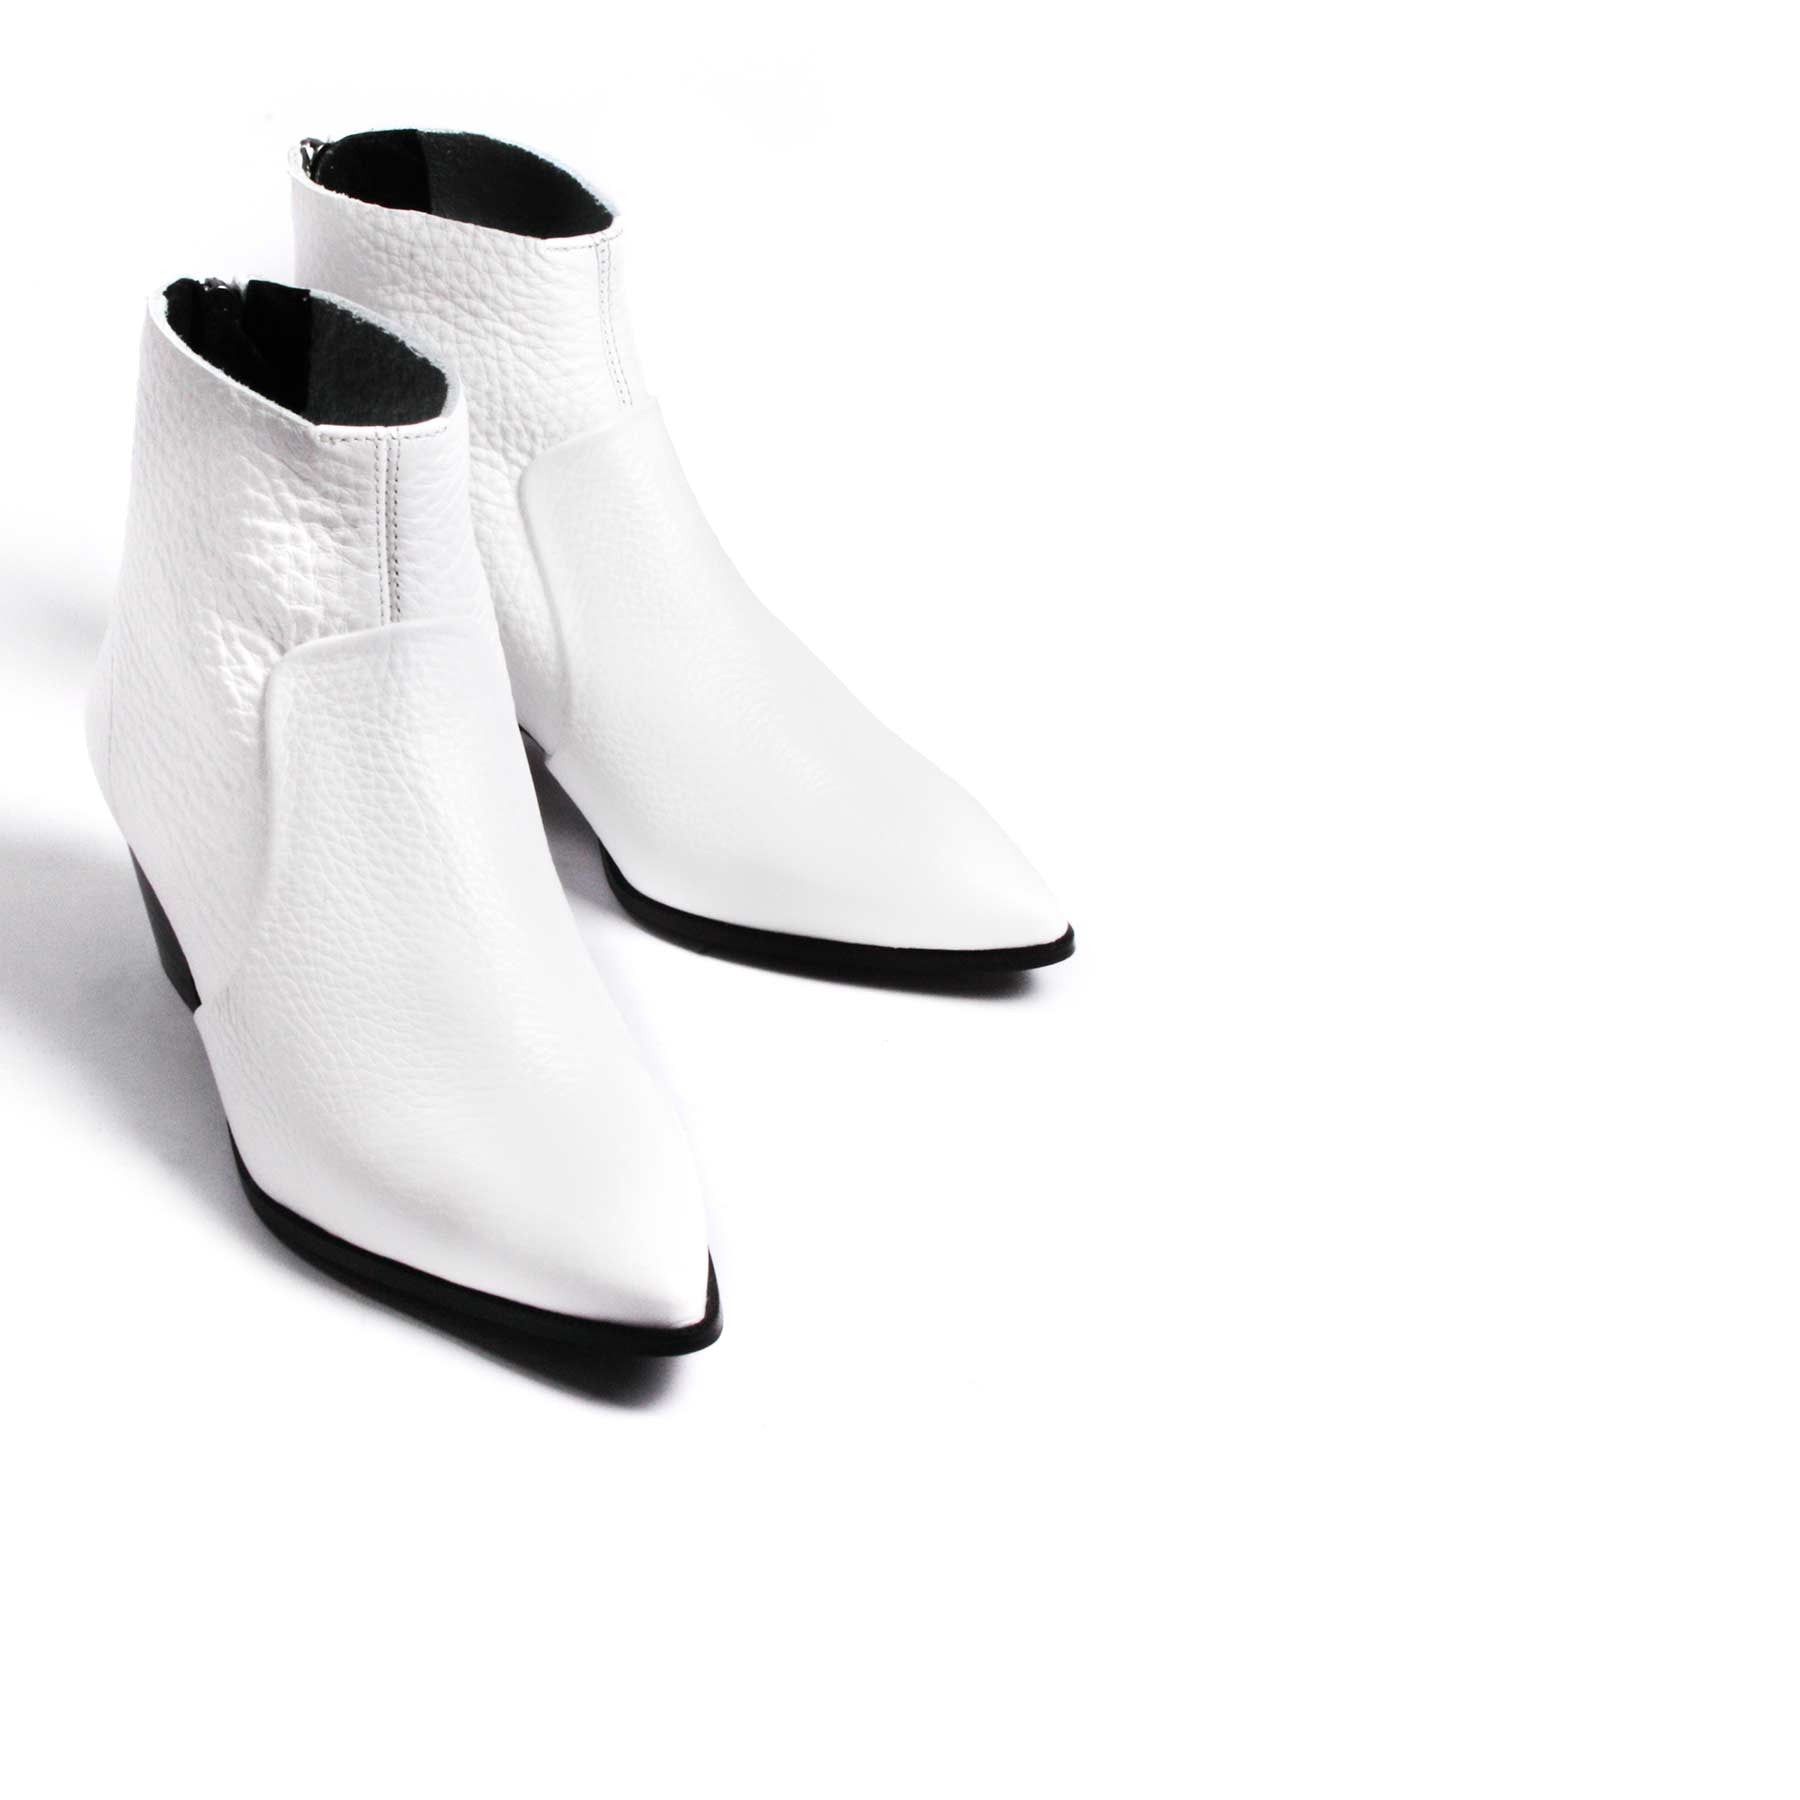 Boots, Brooks White Leather - Lintervalle shoes for woman